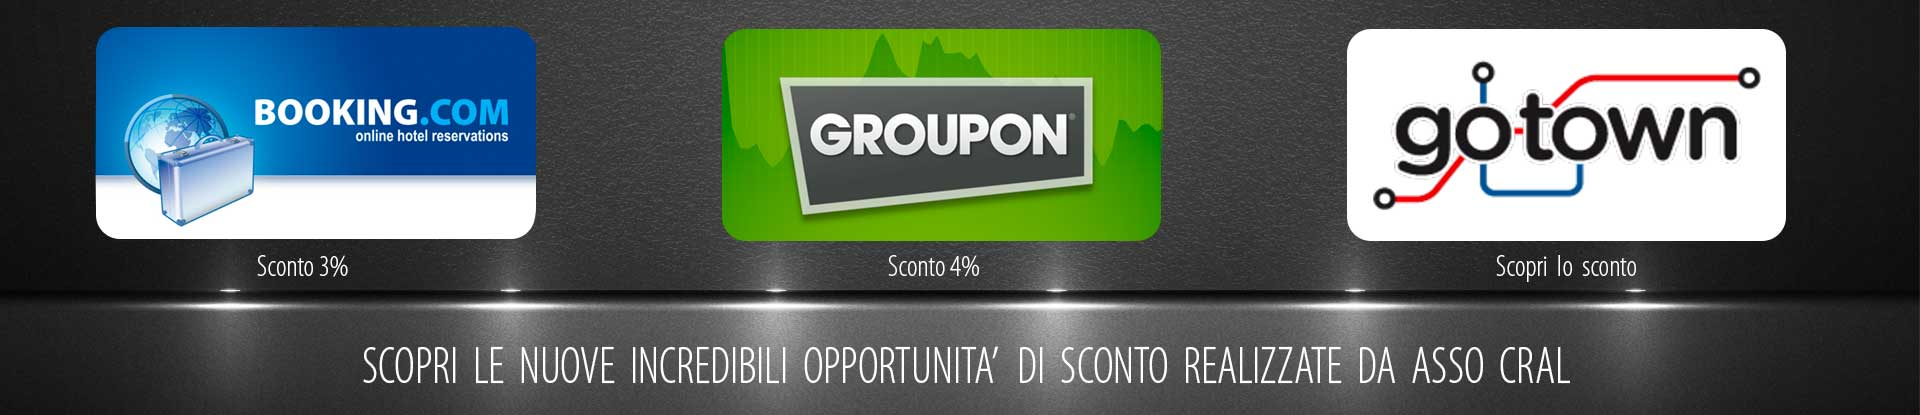 Booking Groupon Gotown